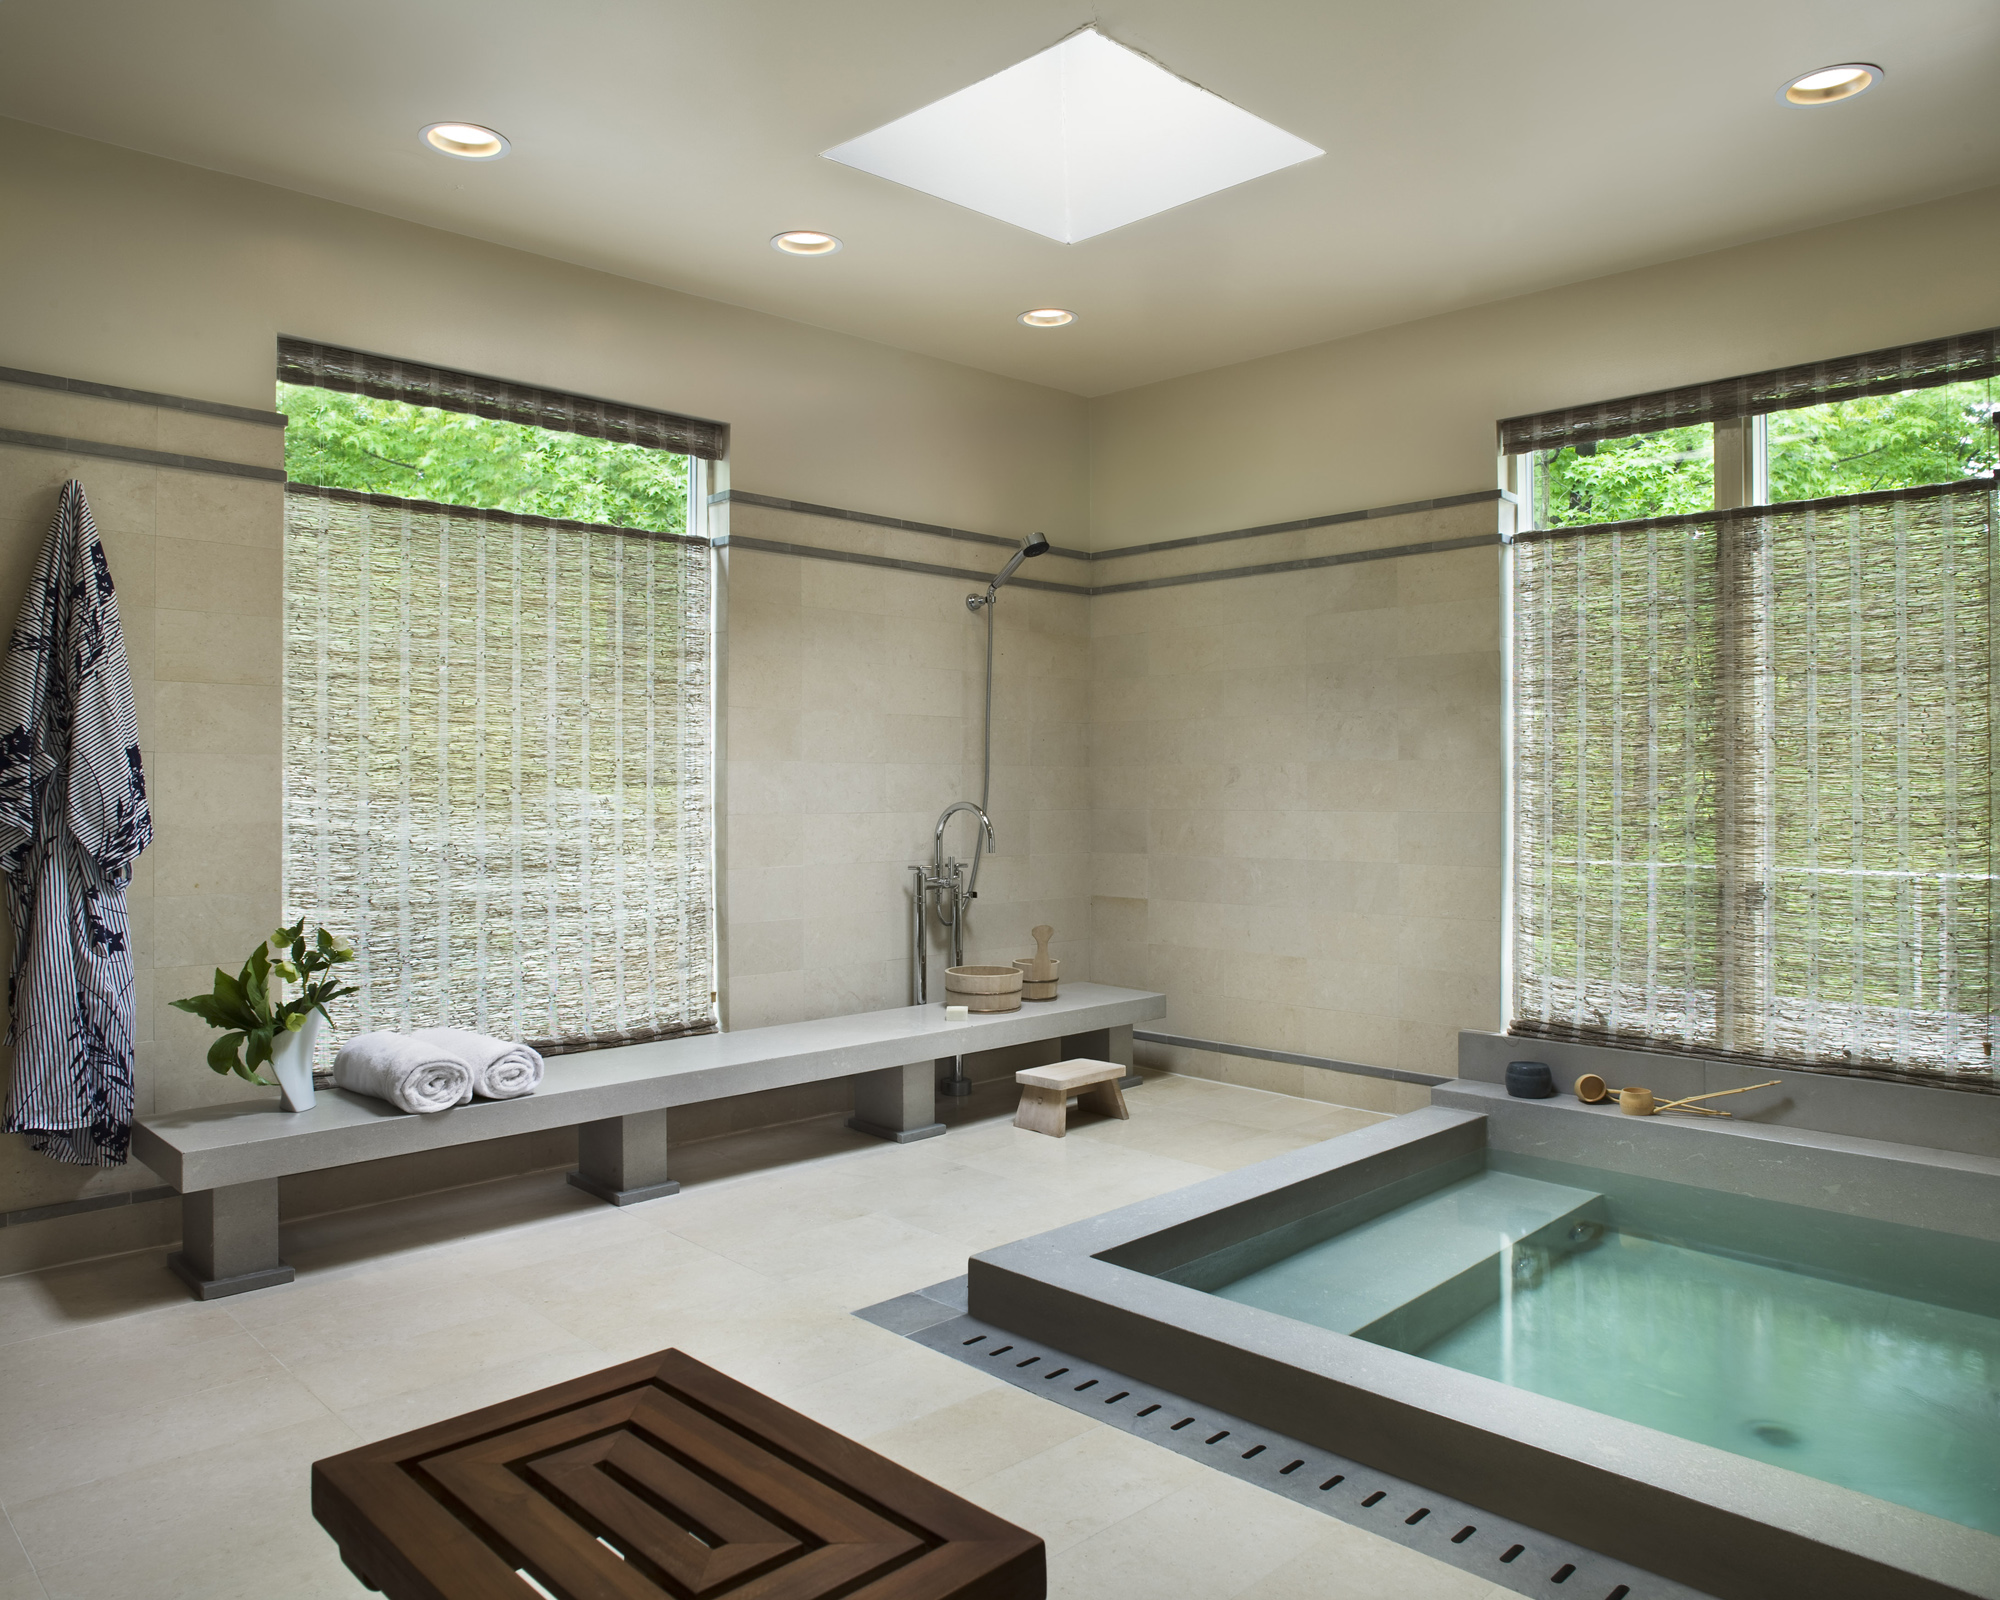 Japanese Bath Design. Japanese Bathroom Design Traditional Touch In ...